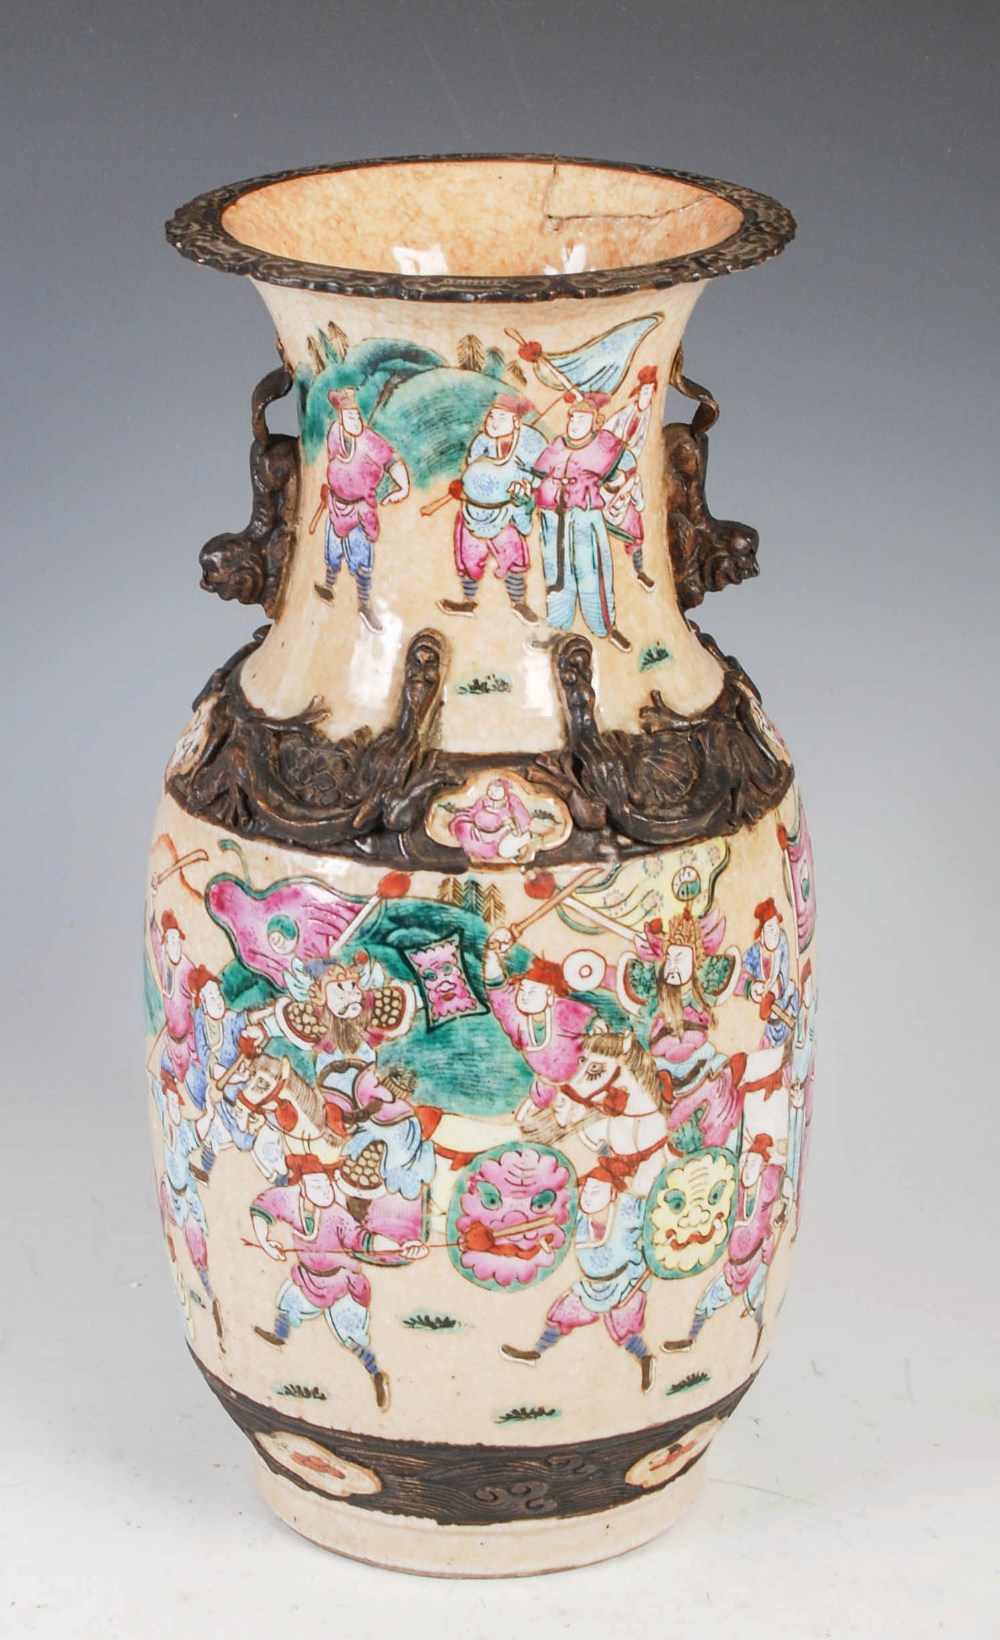 A Chinese porcelain crackle glazed famille rose vase, Qing Dynasty, decorated with warriors, incised - Image 2 of 6